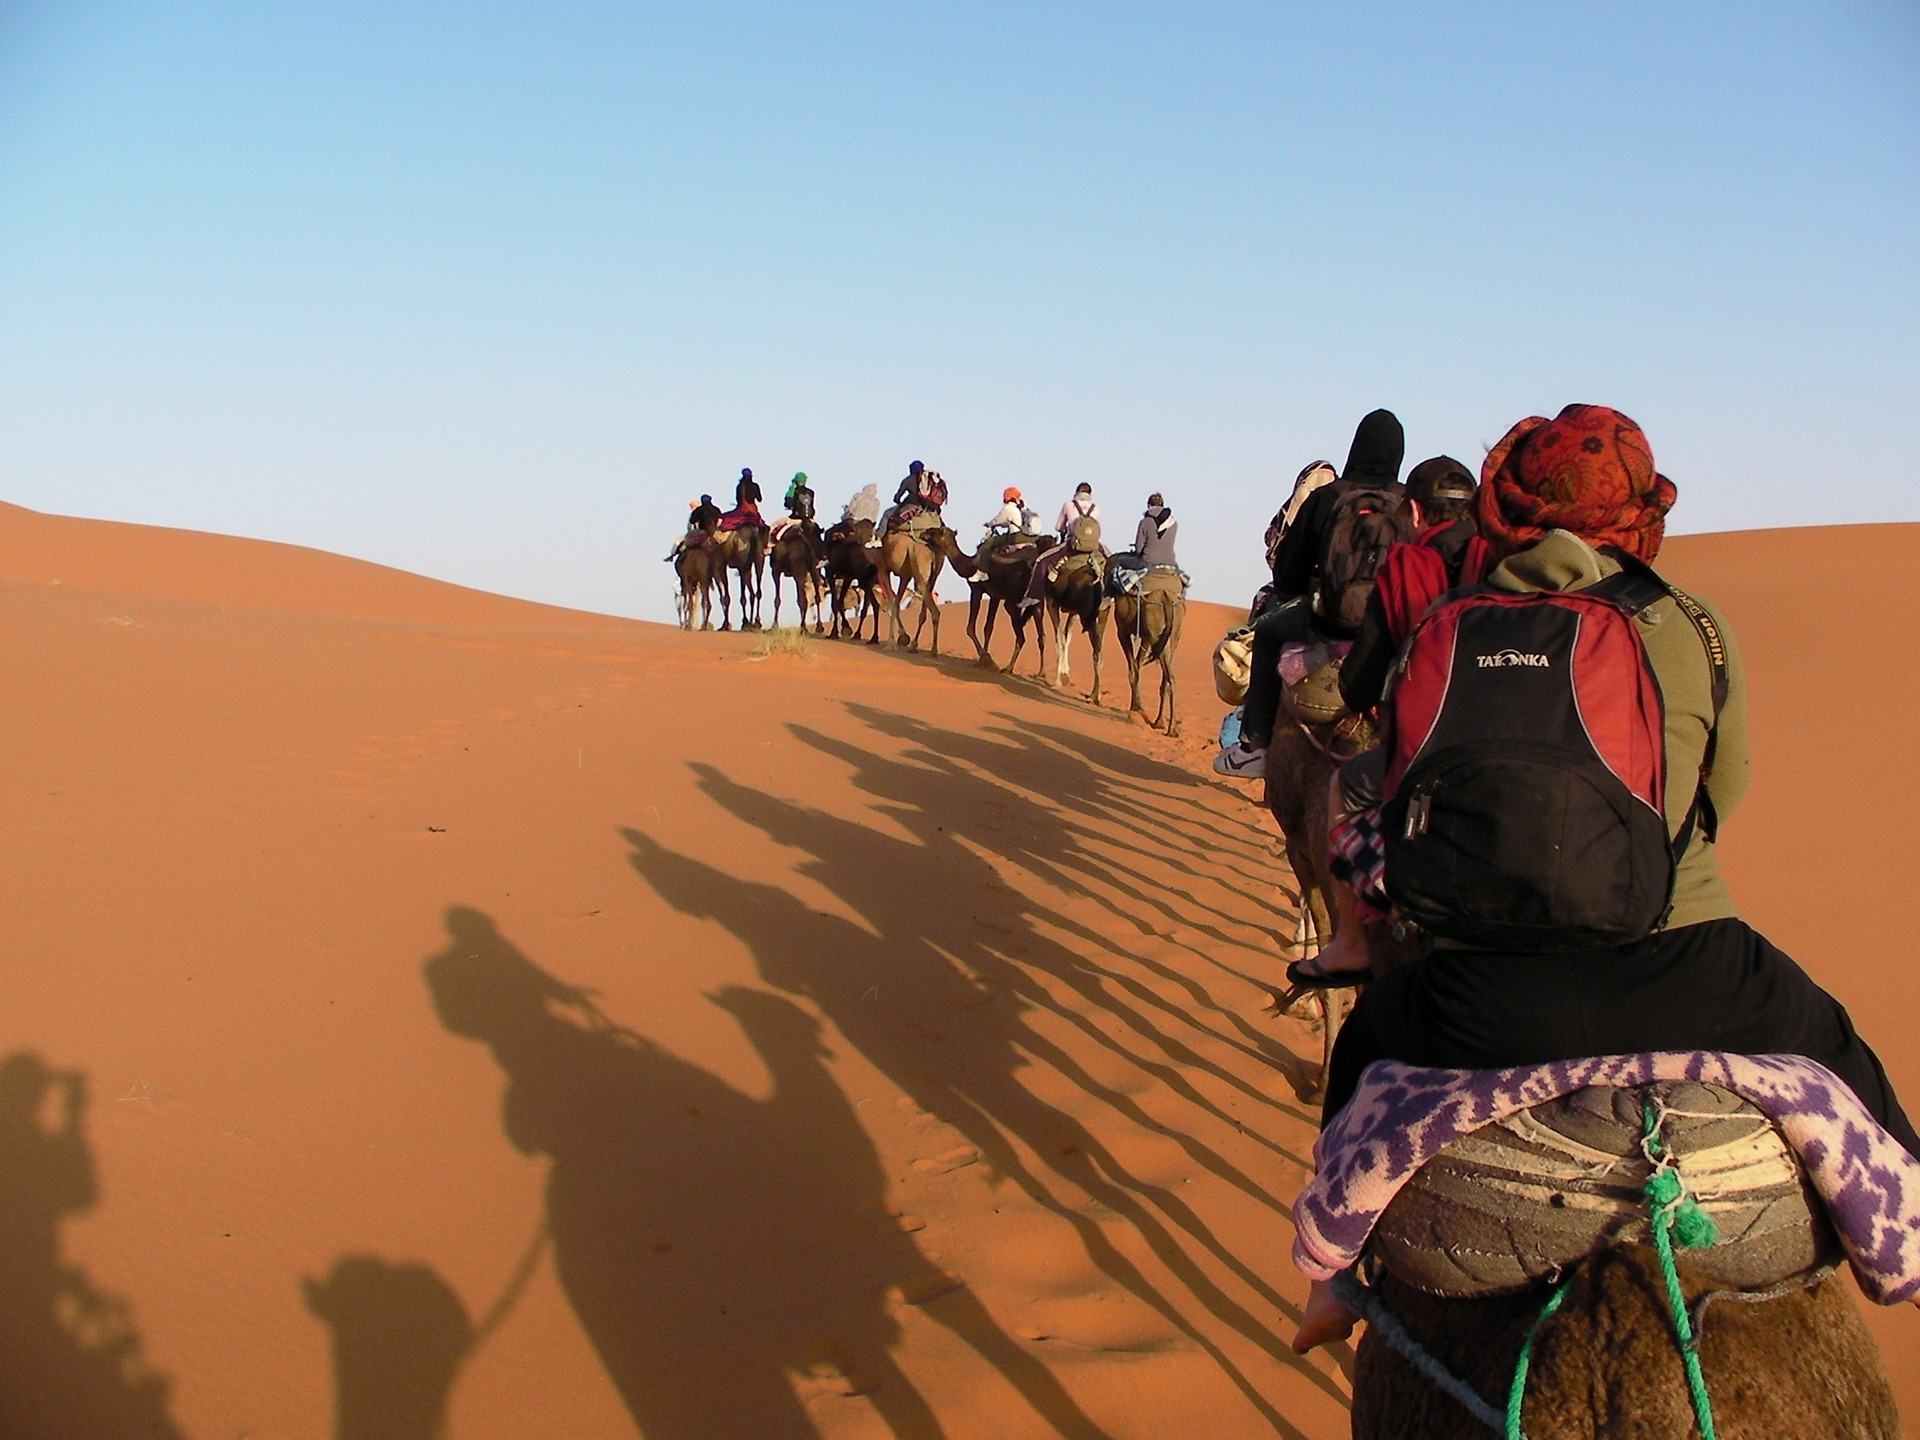 Camel trekking - Start the camel trip from Merzouga, the nearest village to Erg Chebbi and take you into Erg Chebbi for an hour and along the way you will take a stop to enjoy the sunset on top of the sand dune before arrival to the camp.